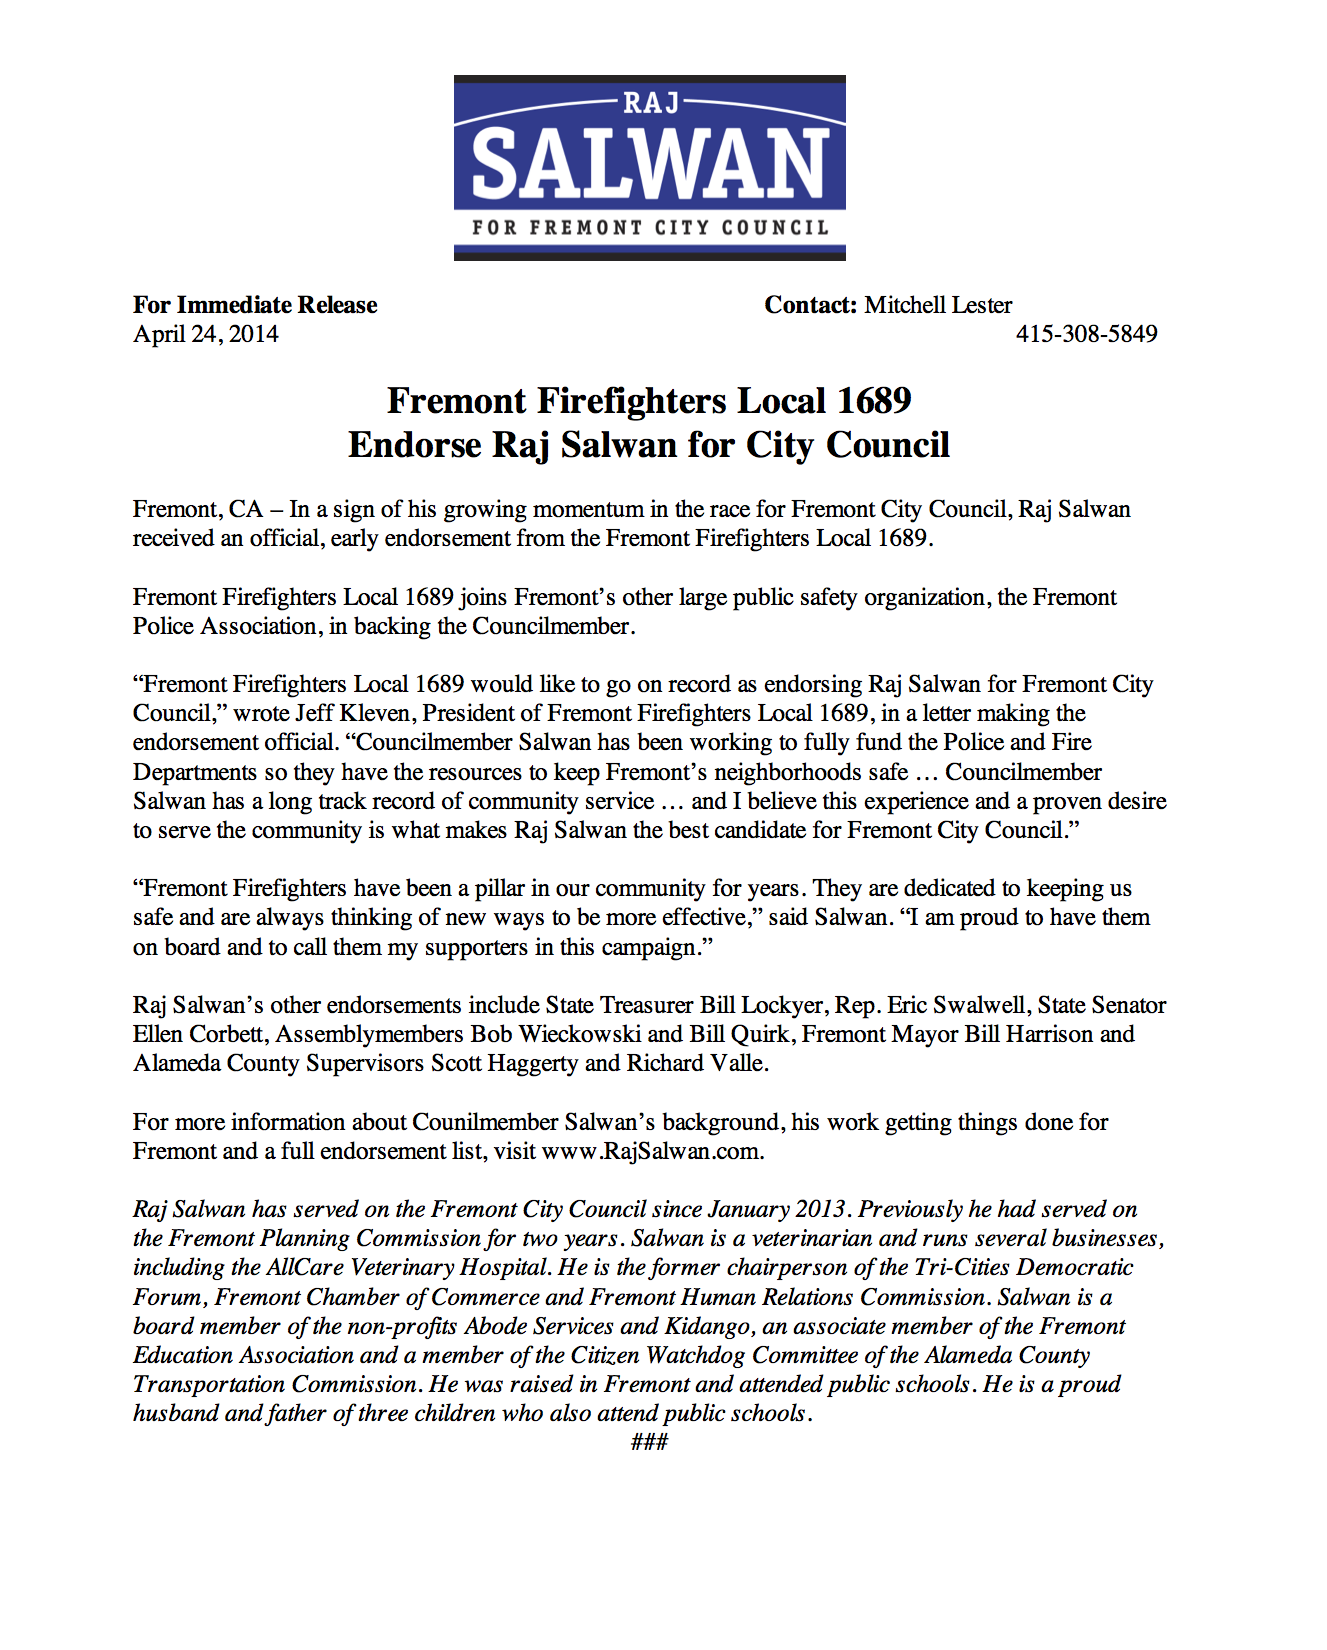 LC_Salwan_Firefighters1689_Release_v1.png